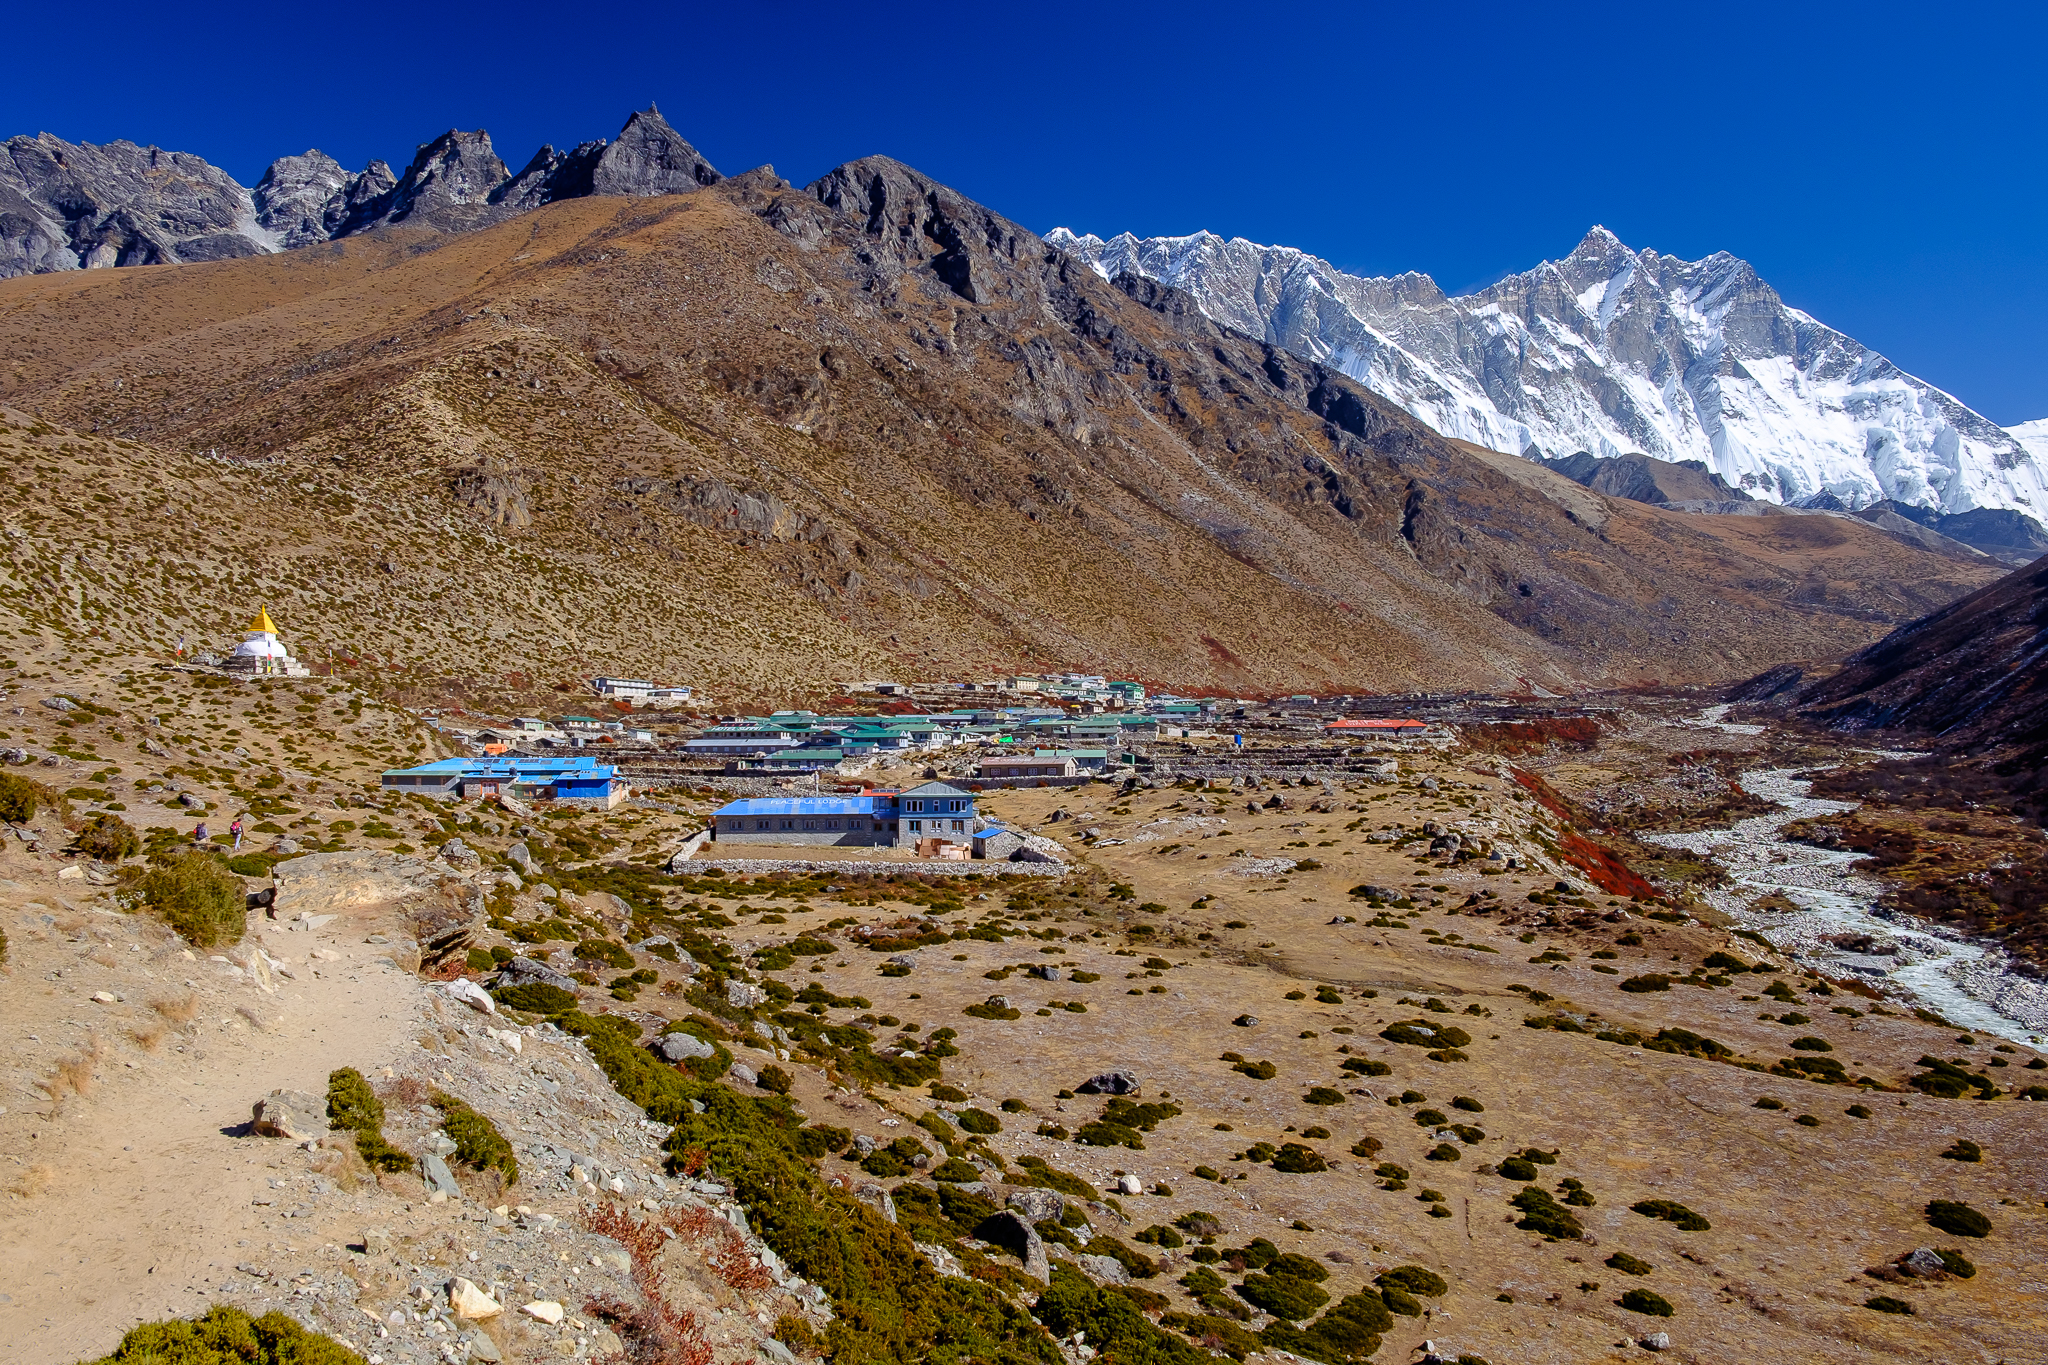 Leaving Dingboche